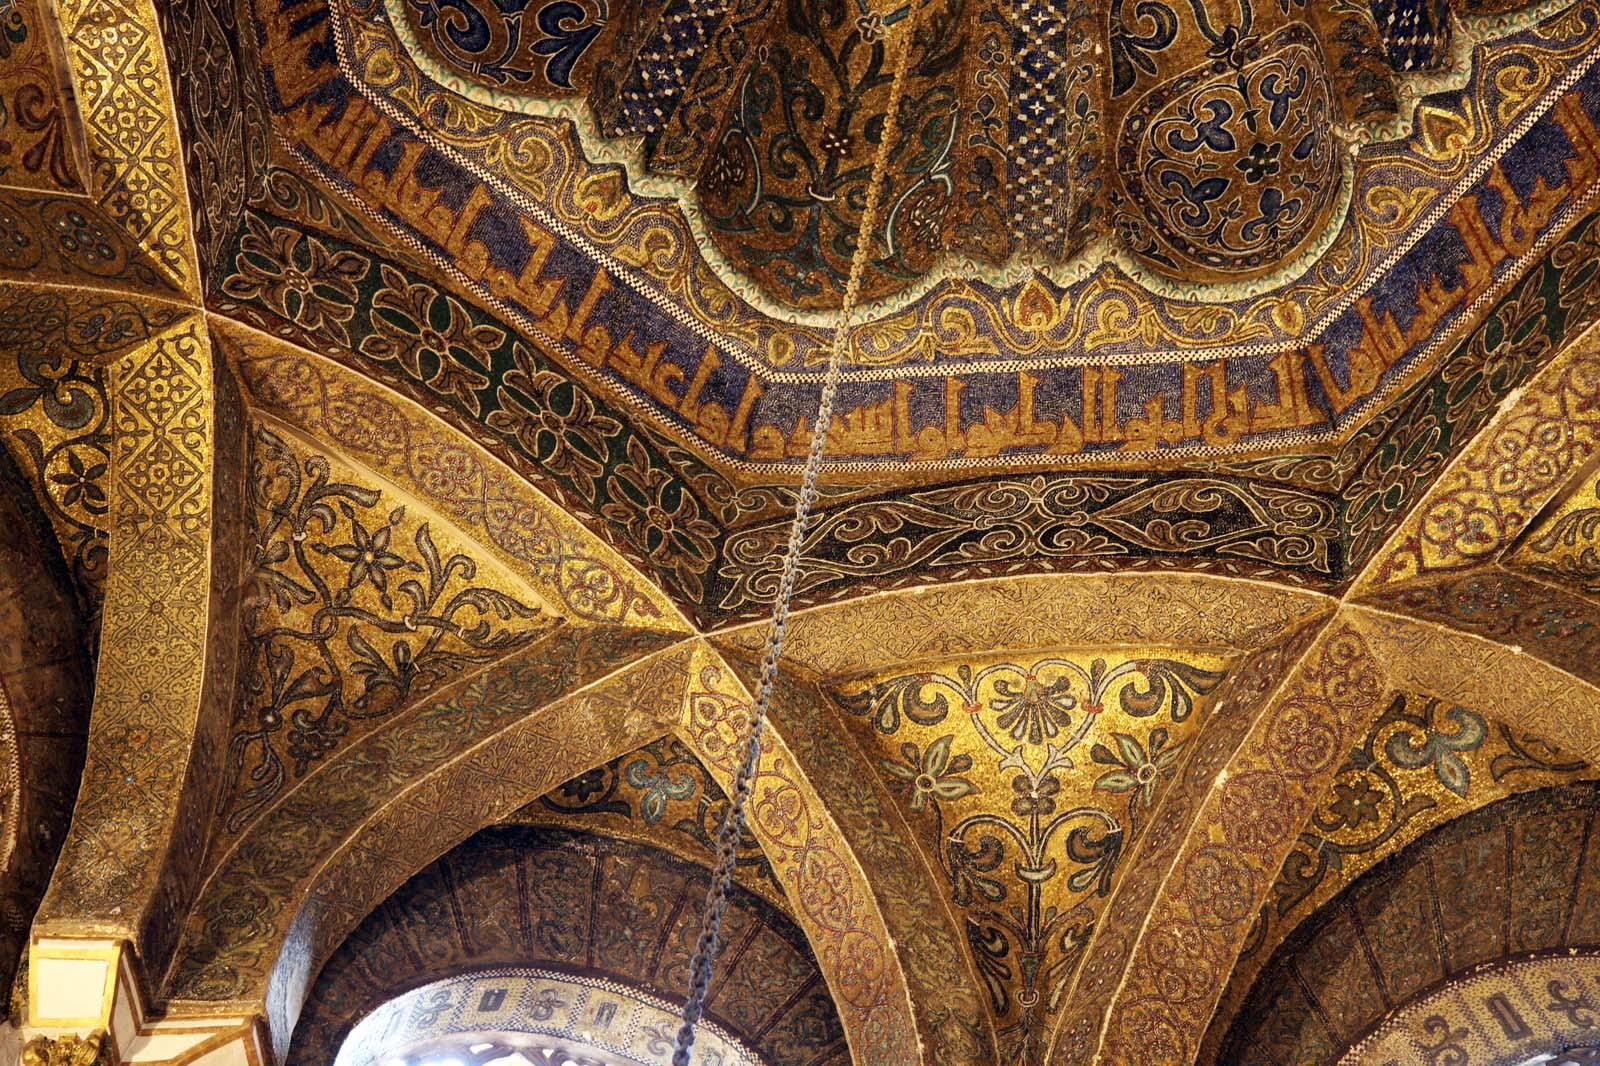 Guided-Tour-to-the-Mosque-of-Cordoba-2